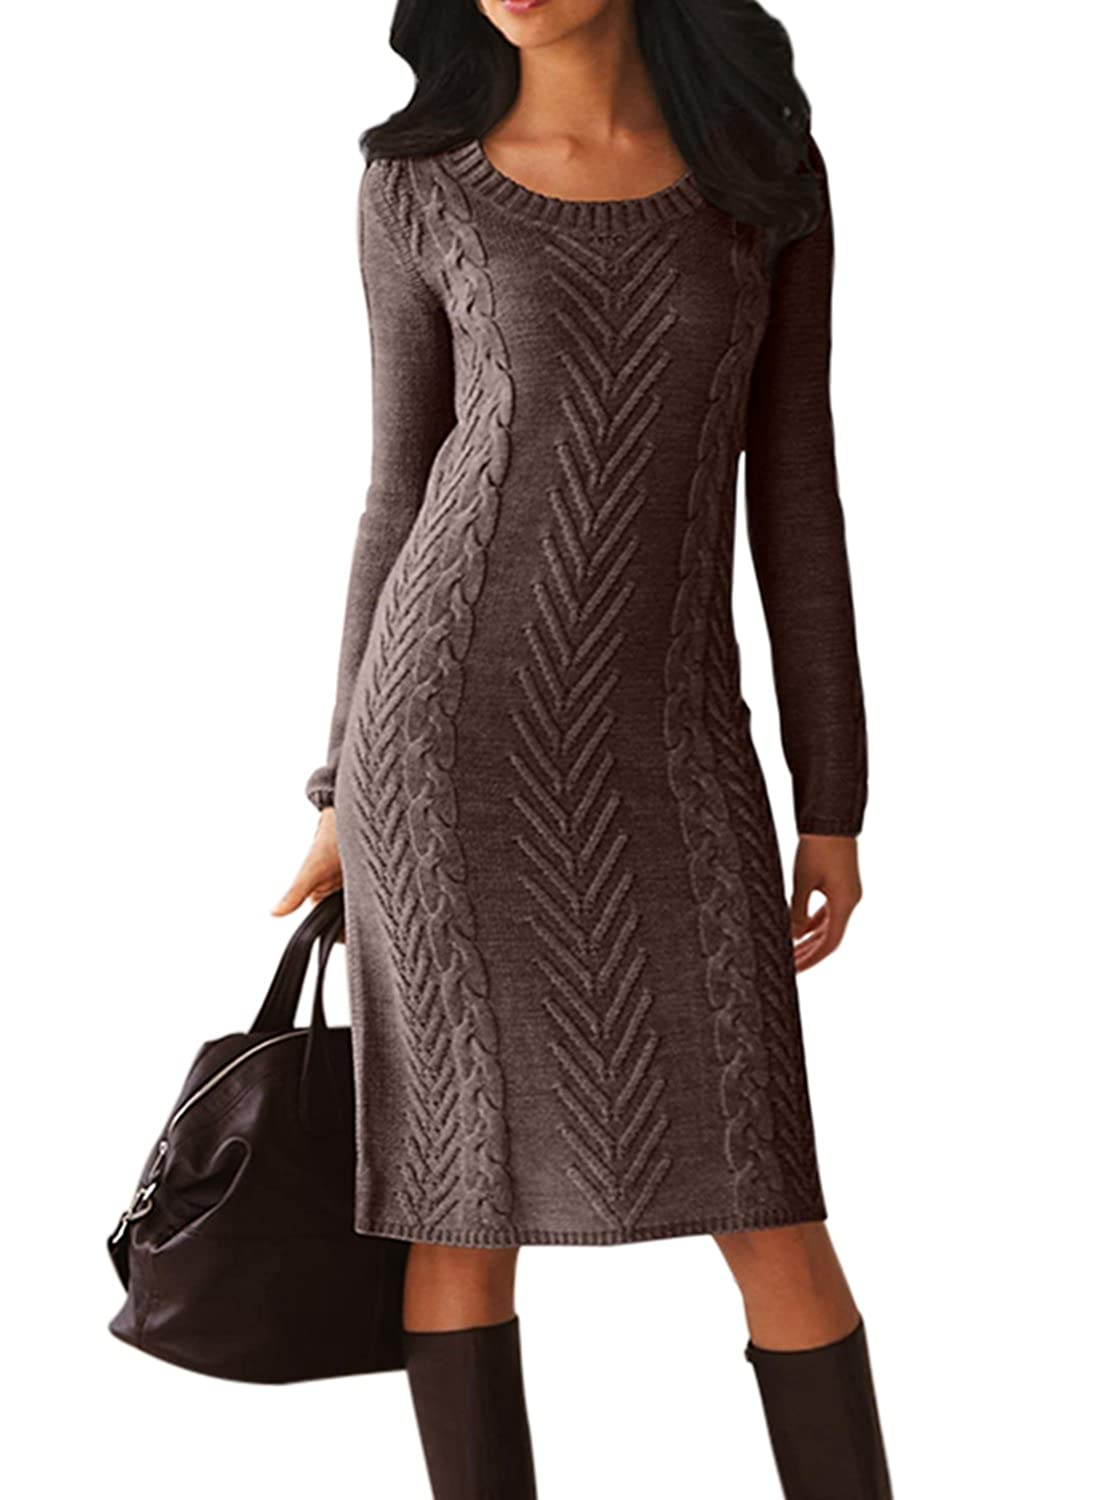 Dearlove Women's Long Sleeve Crew Neck Slim Knit Sweater Bodycon Midi Dress DL27772-A